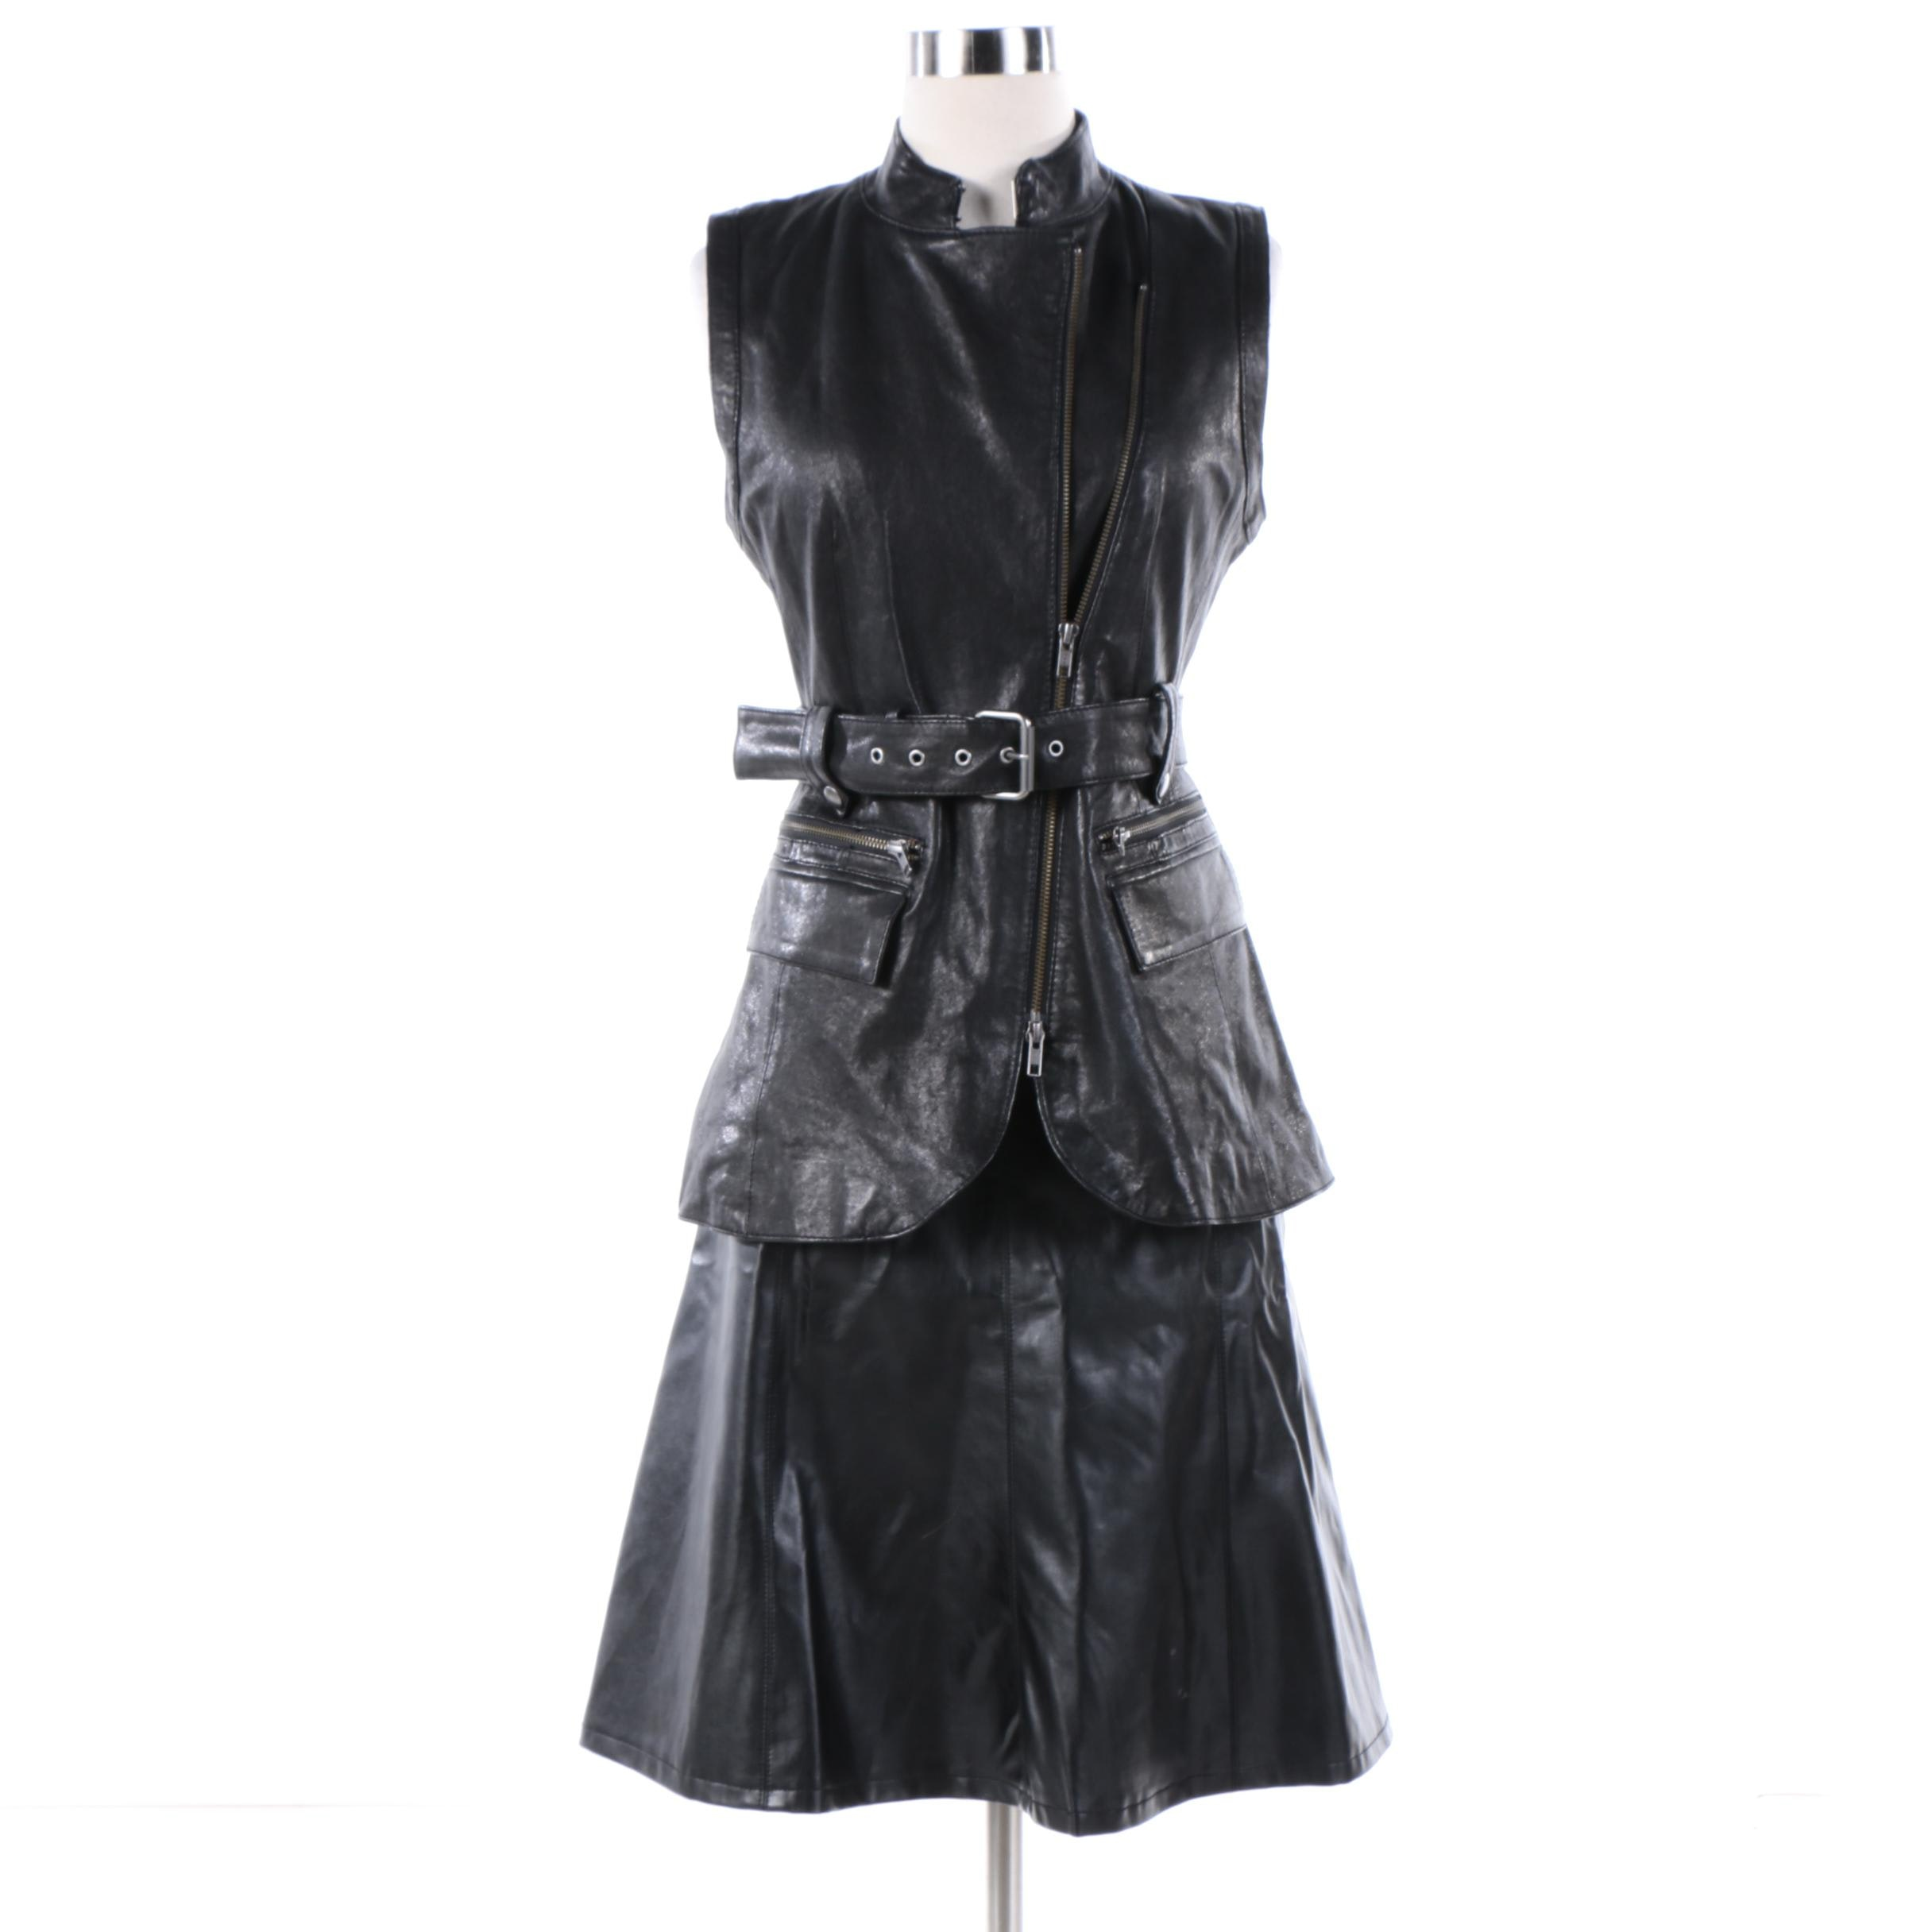 Rachel Zoe Black Leather Vest with Dennis by Dennis Basso Faux Leather Skirt